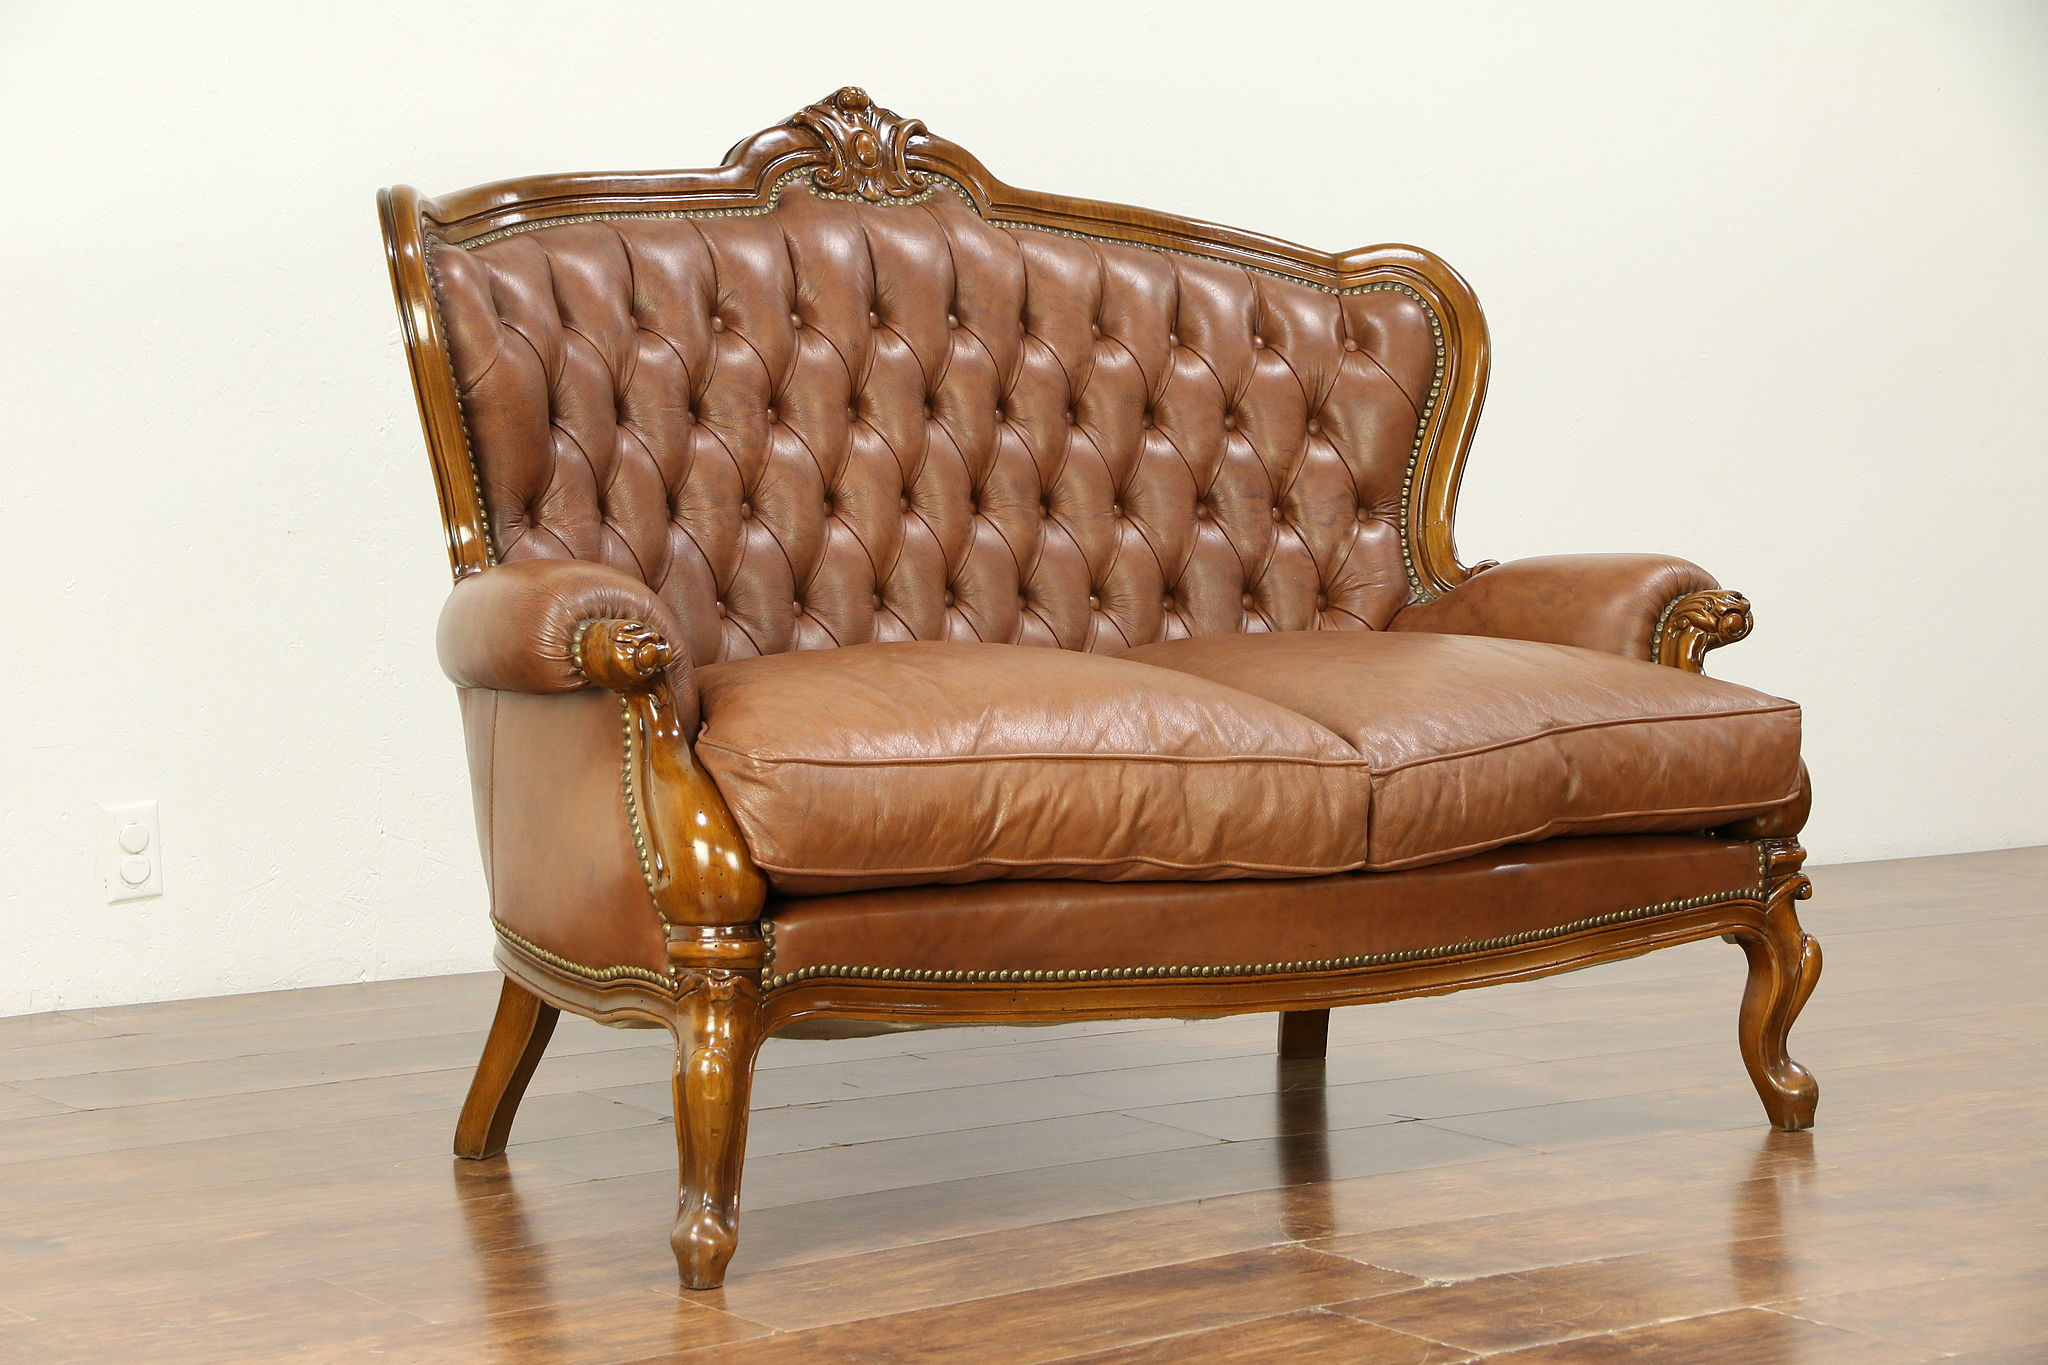 Pleasing Italian Tufted Leather Vintage Loveseat Hand Carved Frame 30523 Caraccident5 Cool Chair Designs And Ideas Caraccident5Info